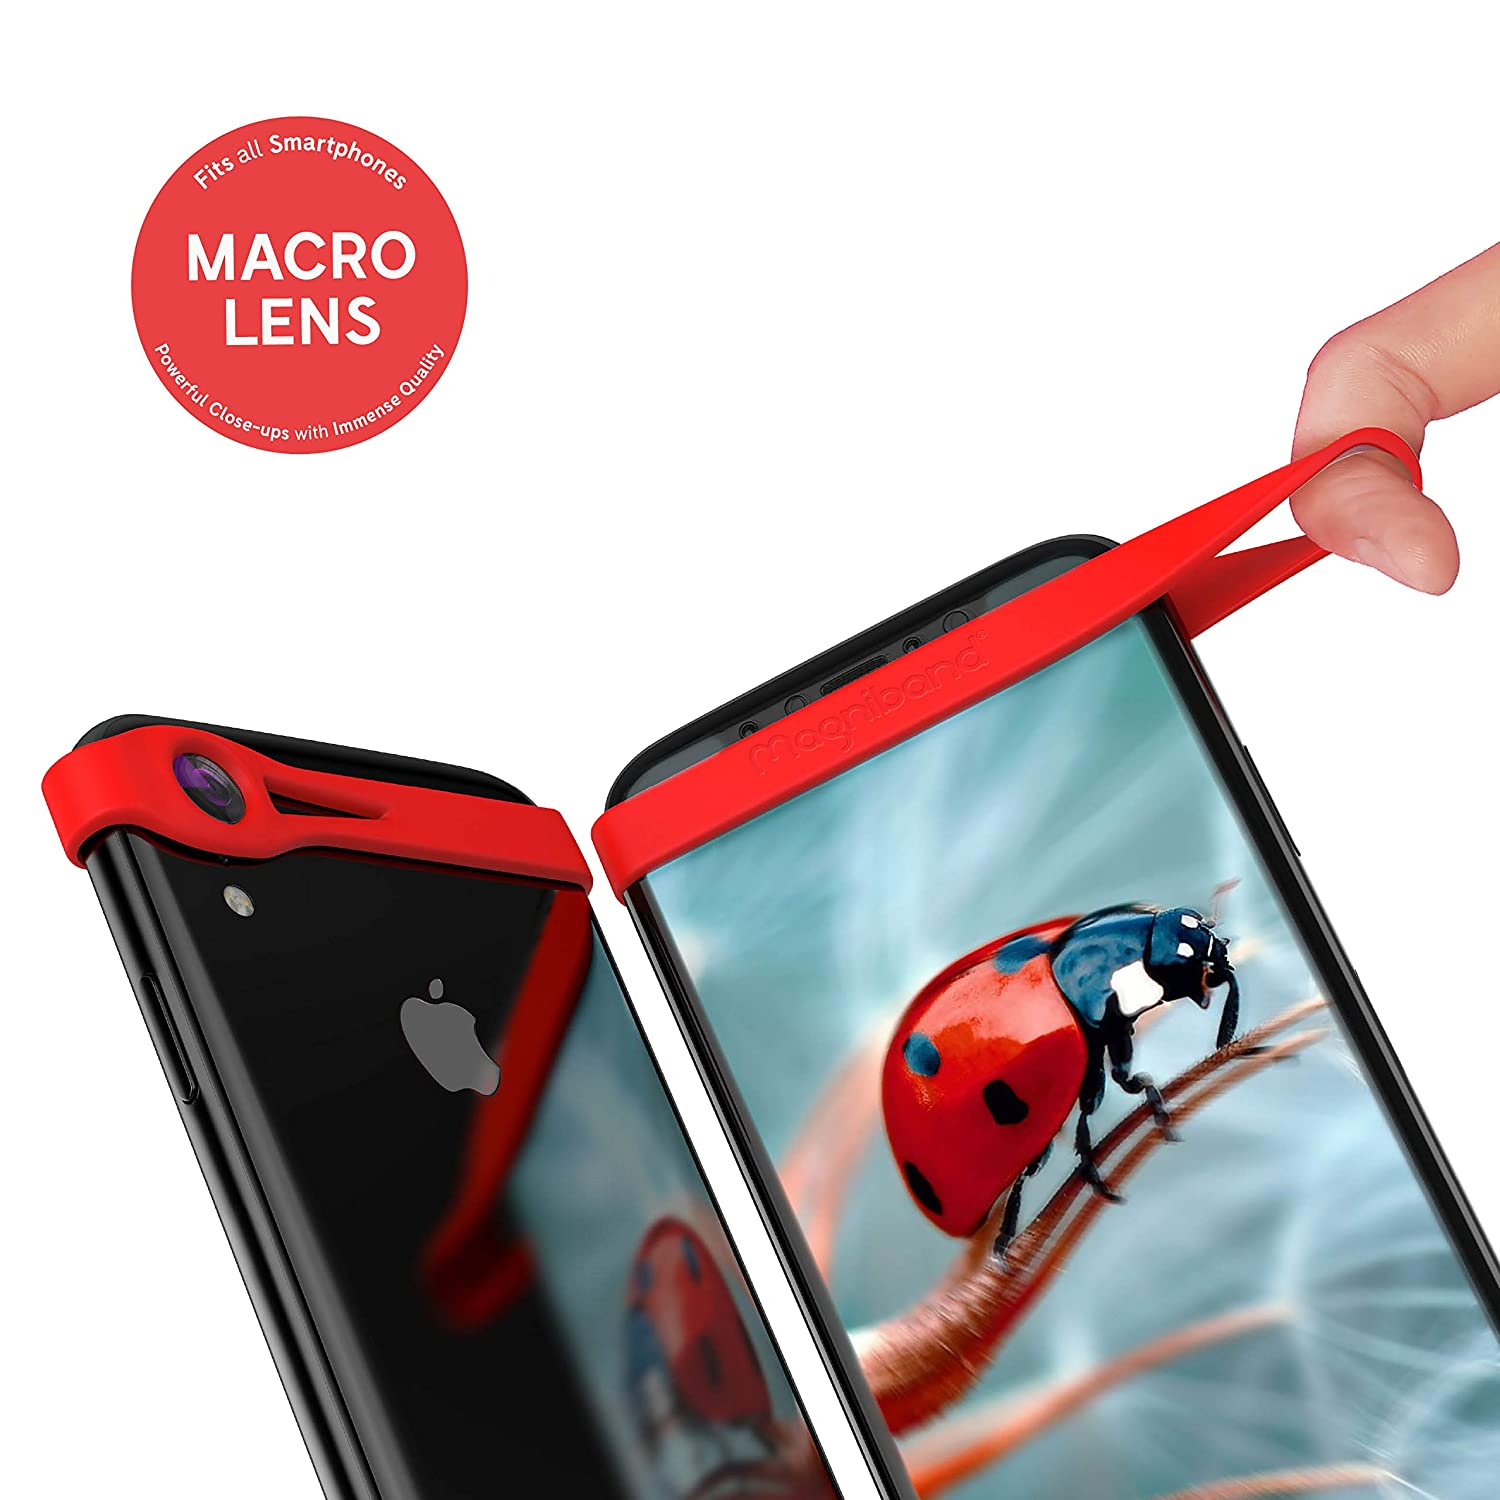 Red 5c 6 MAGNIBAND Macro Lens Band For iPhones 4 5 4s 6 Plus and Most Other Smartphones. 5s